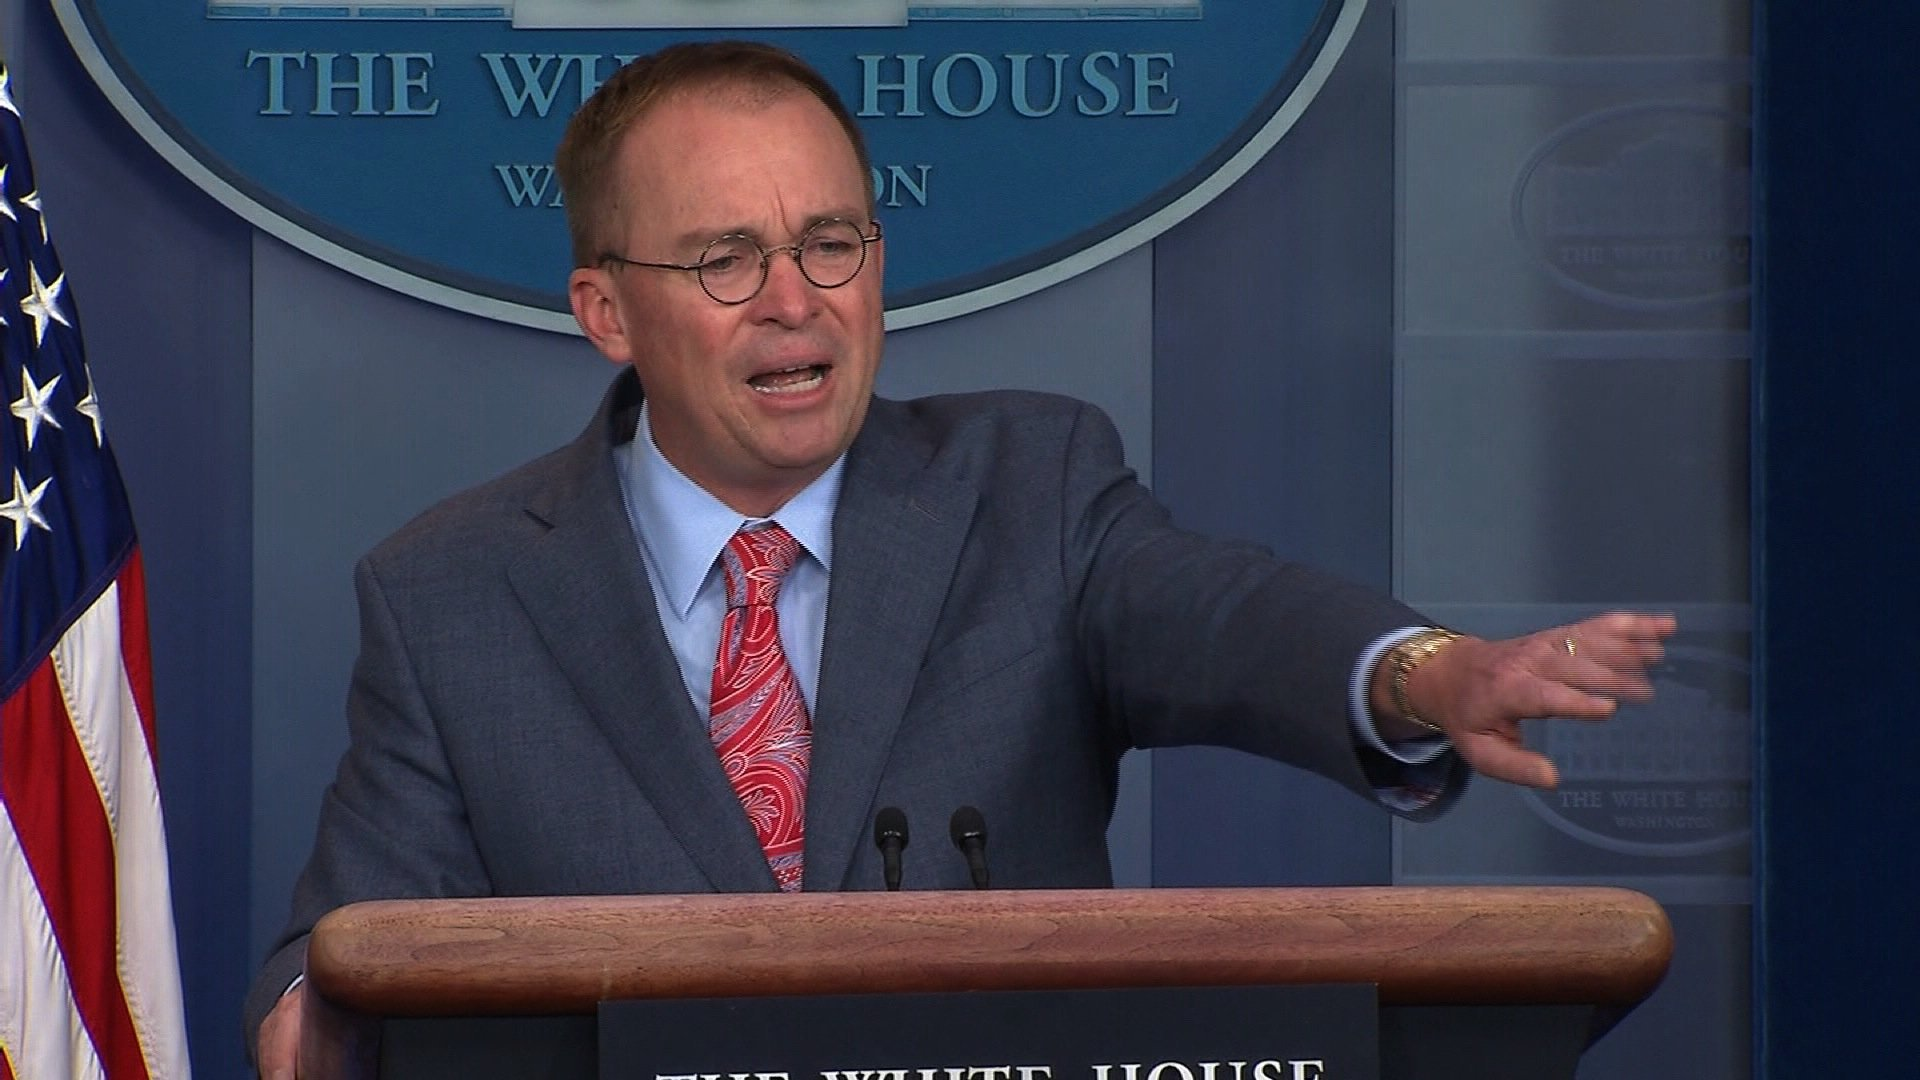 Mulvaney faced White House ouster threat before impeachment crisis took over